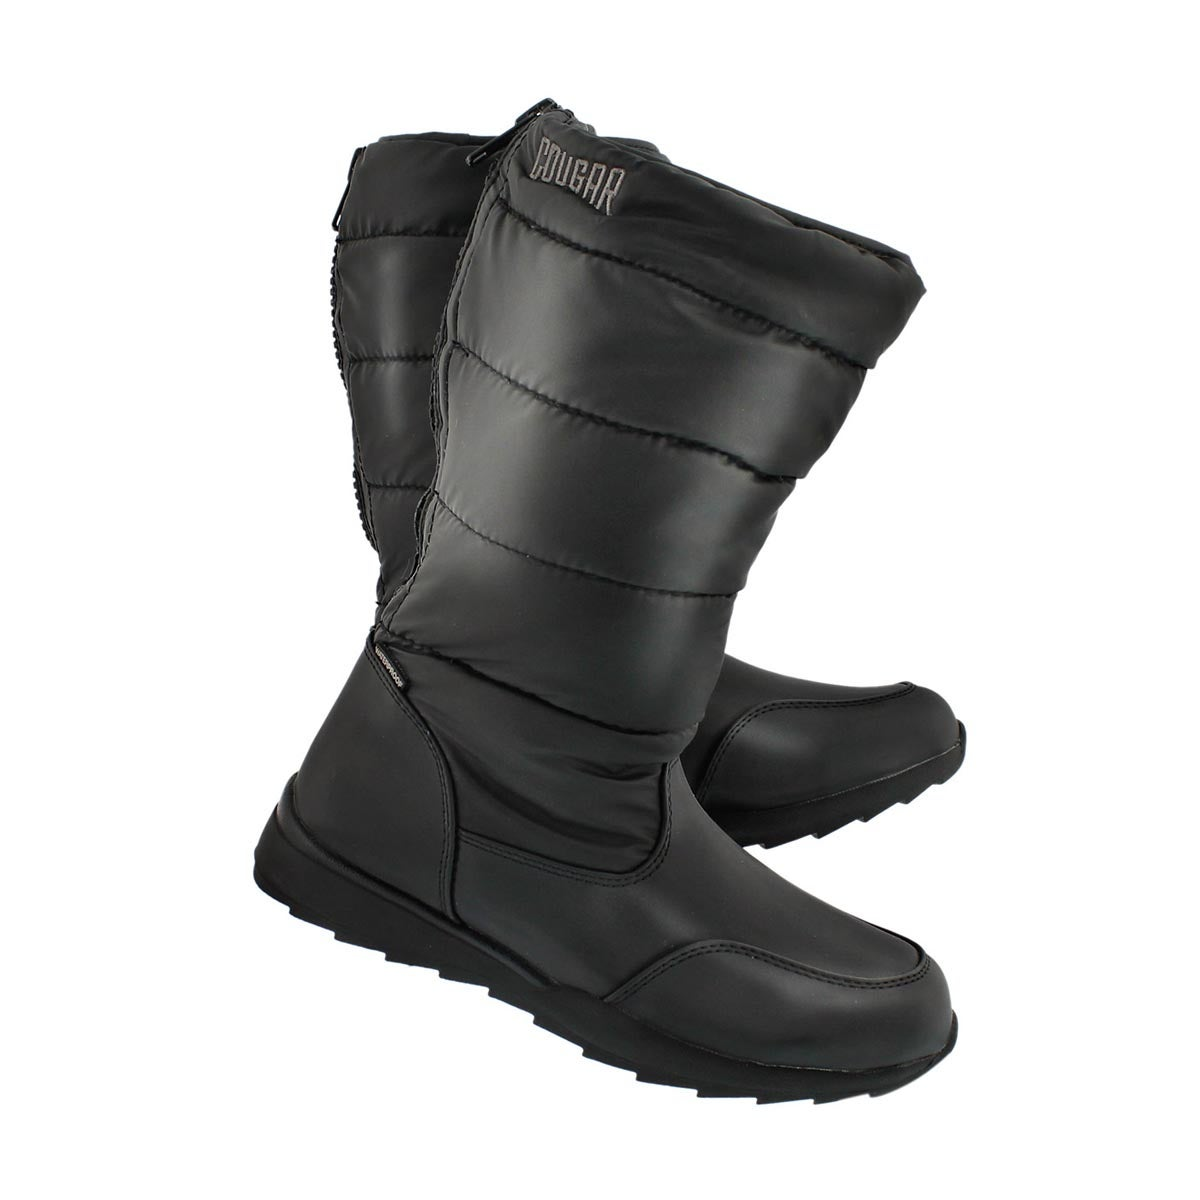 Grls Tizzy blk nylon wtpf winter boot